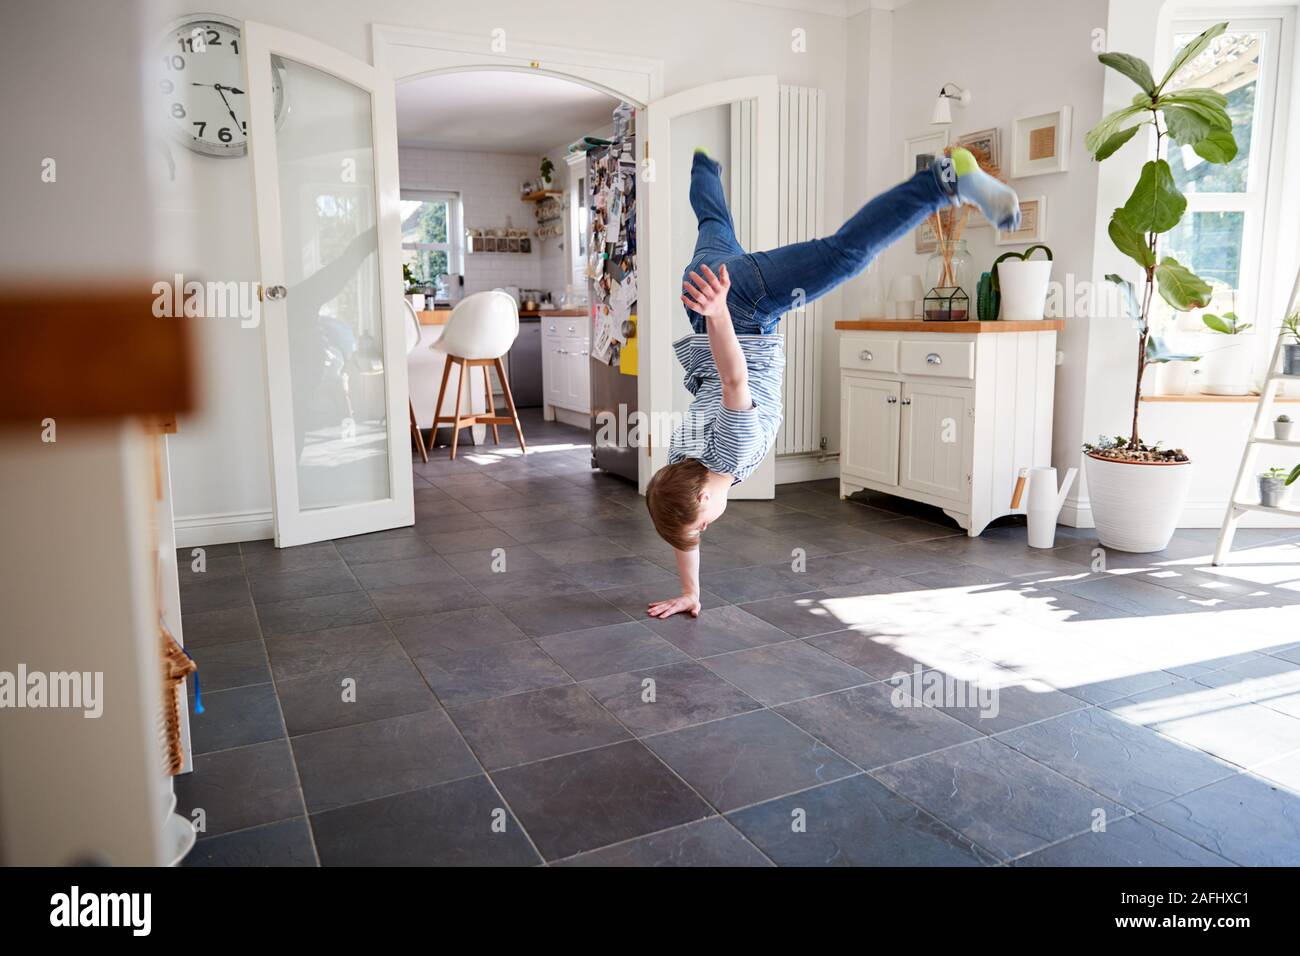 Young Downs Syndrome Man Having Fun Breakdancing At Home Stock Photo